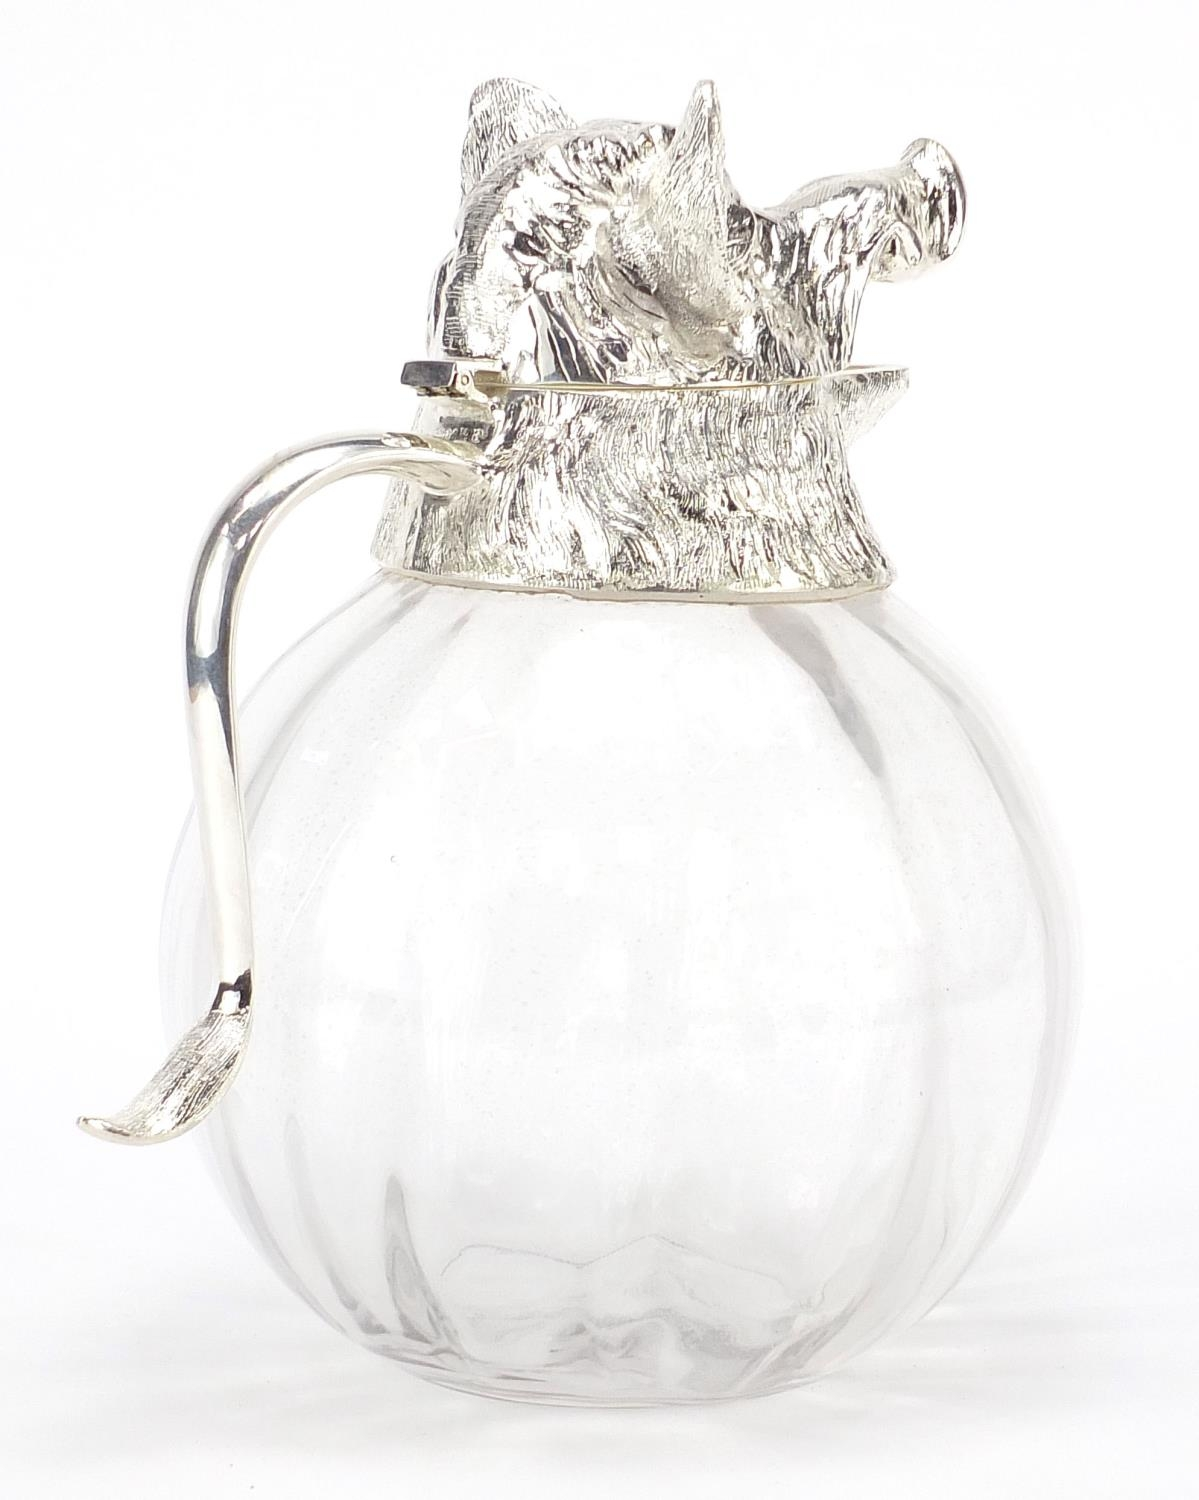 Manner of Valenti, globular glass carafe with silver plated mounts in the form of a boars head, 28cm - Image 5 of 10